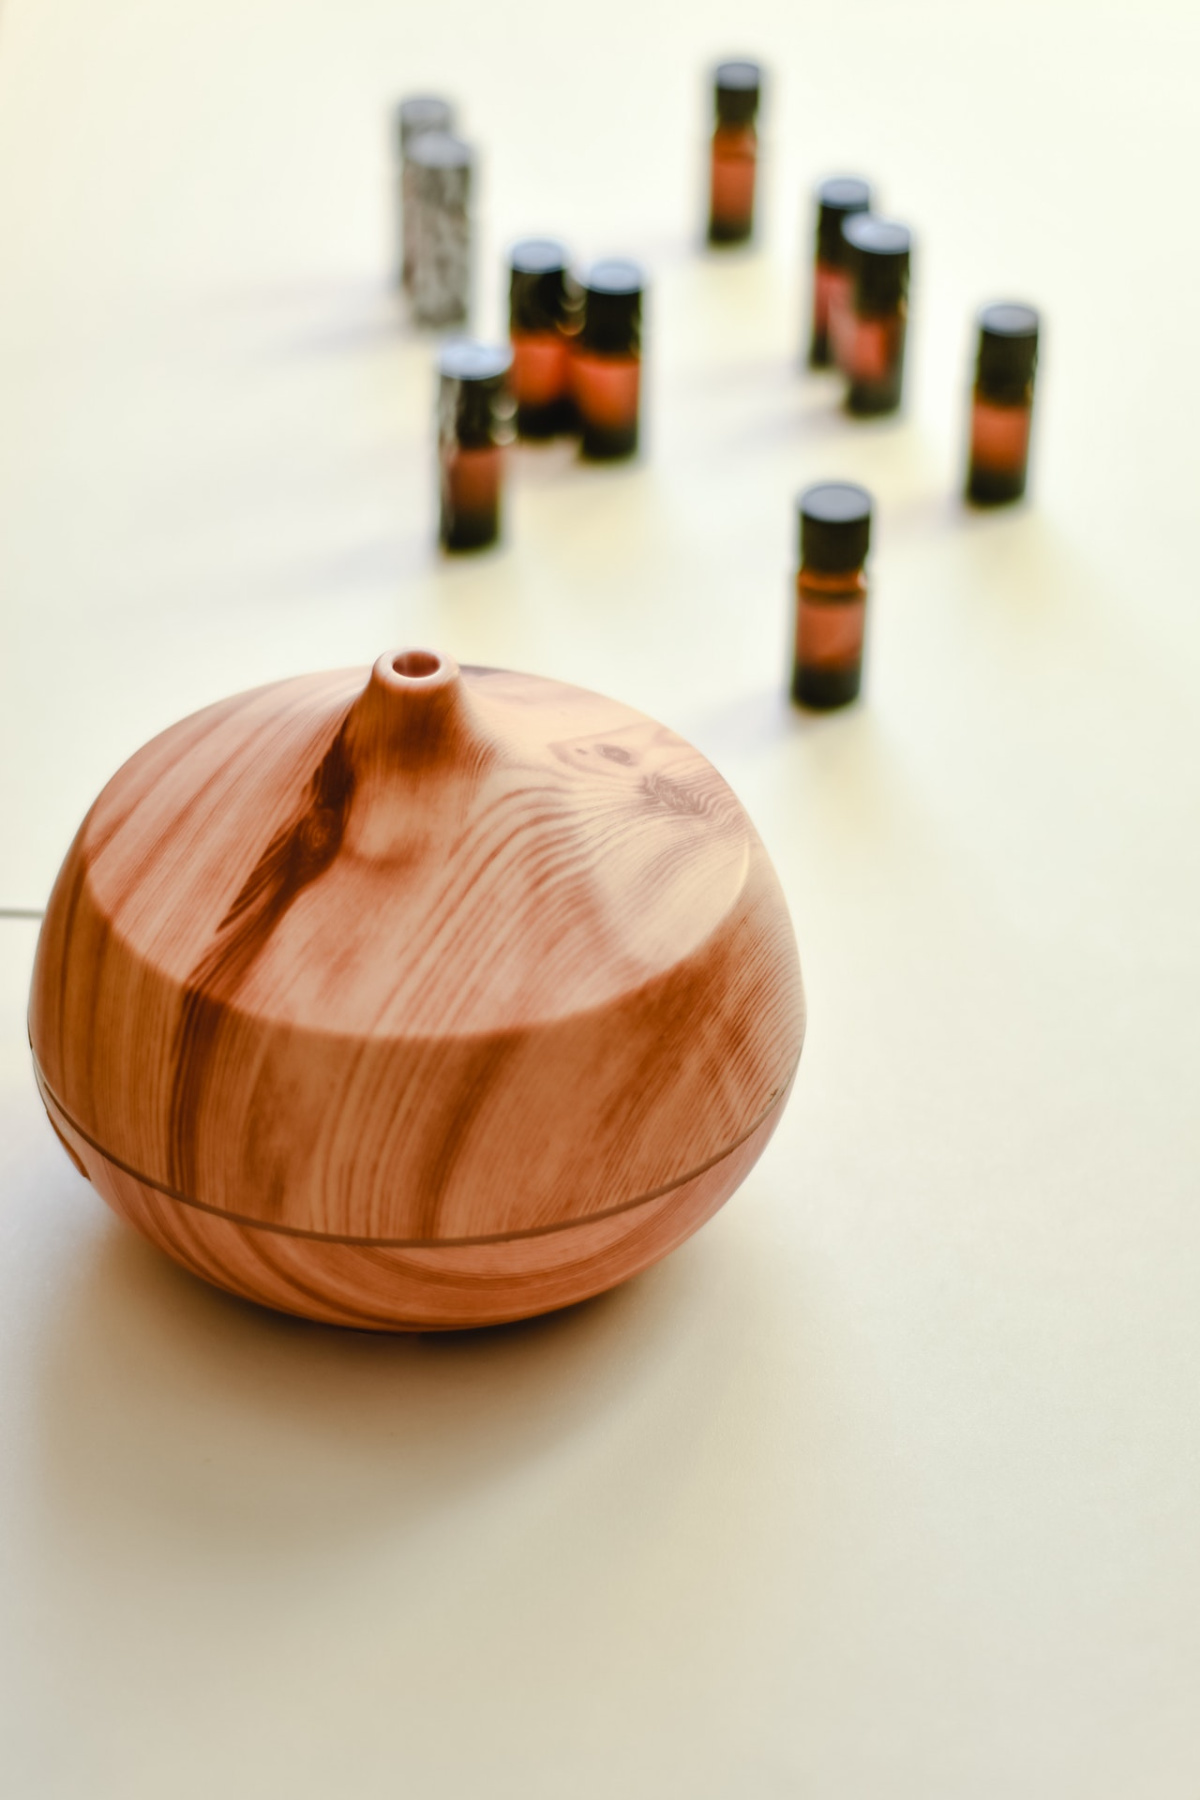 diffuser with essential oils in the background